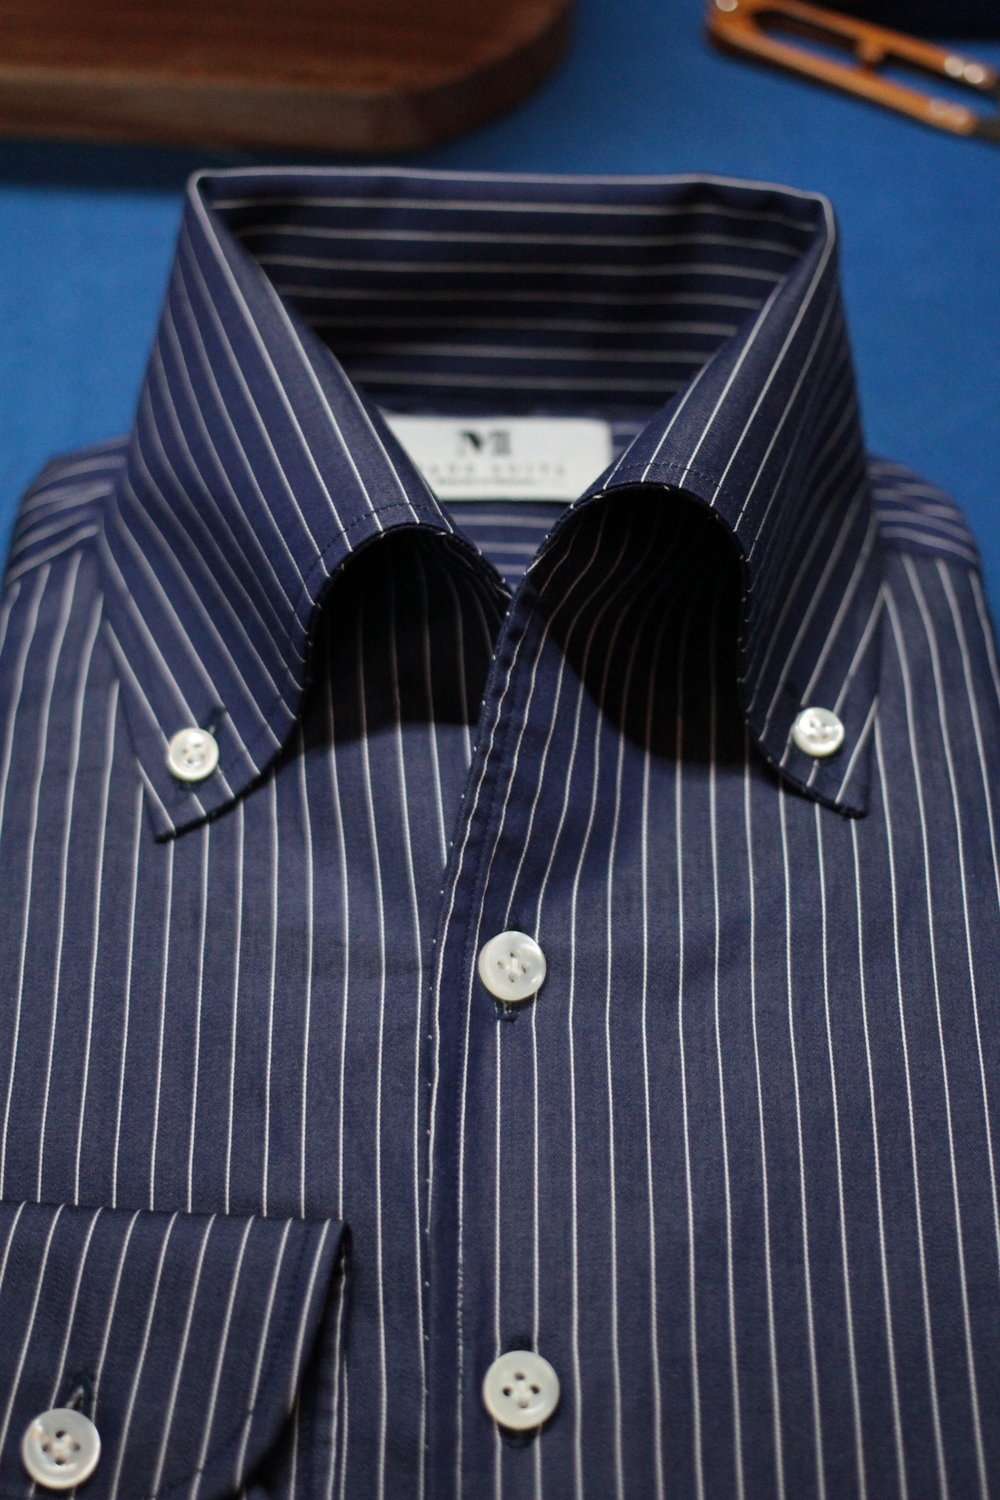 One Piece Collar from a Legend.